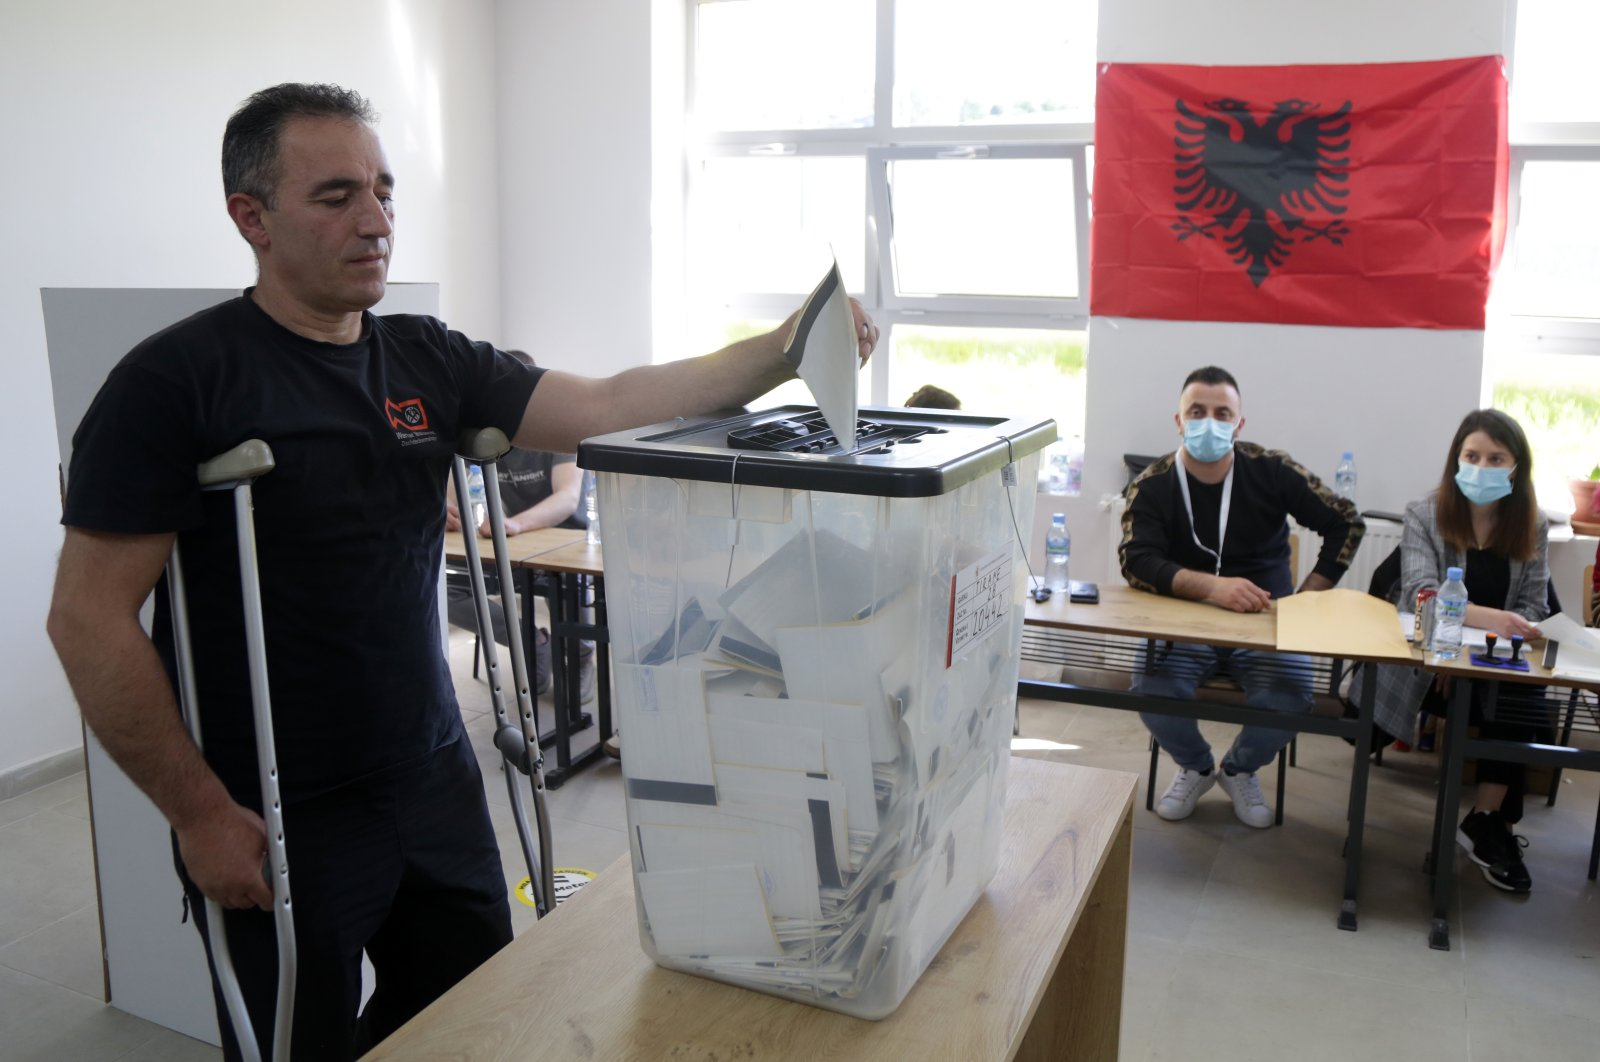 Albanian citizens cast their votes at a polling station in Tirana, Albania, April 25, 2021. (EPA Photo)